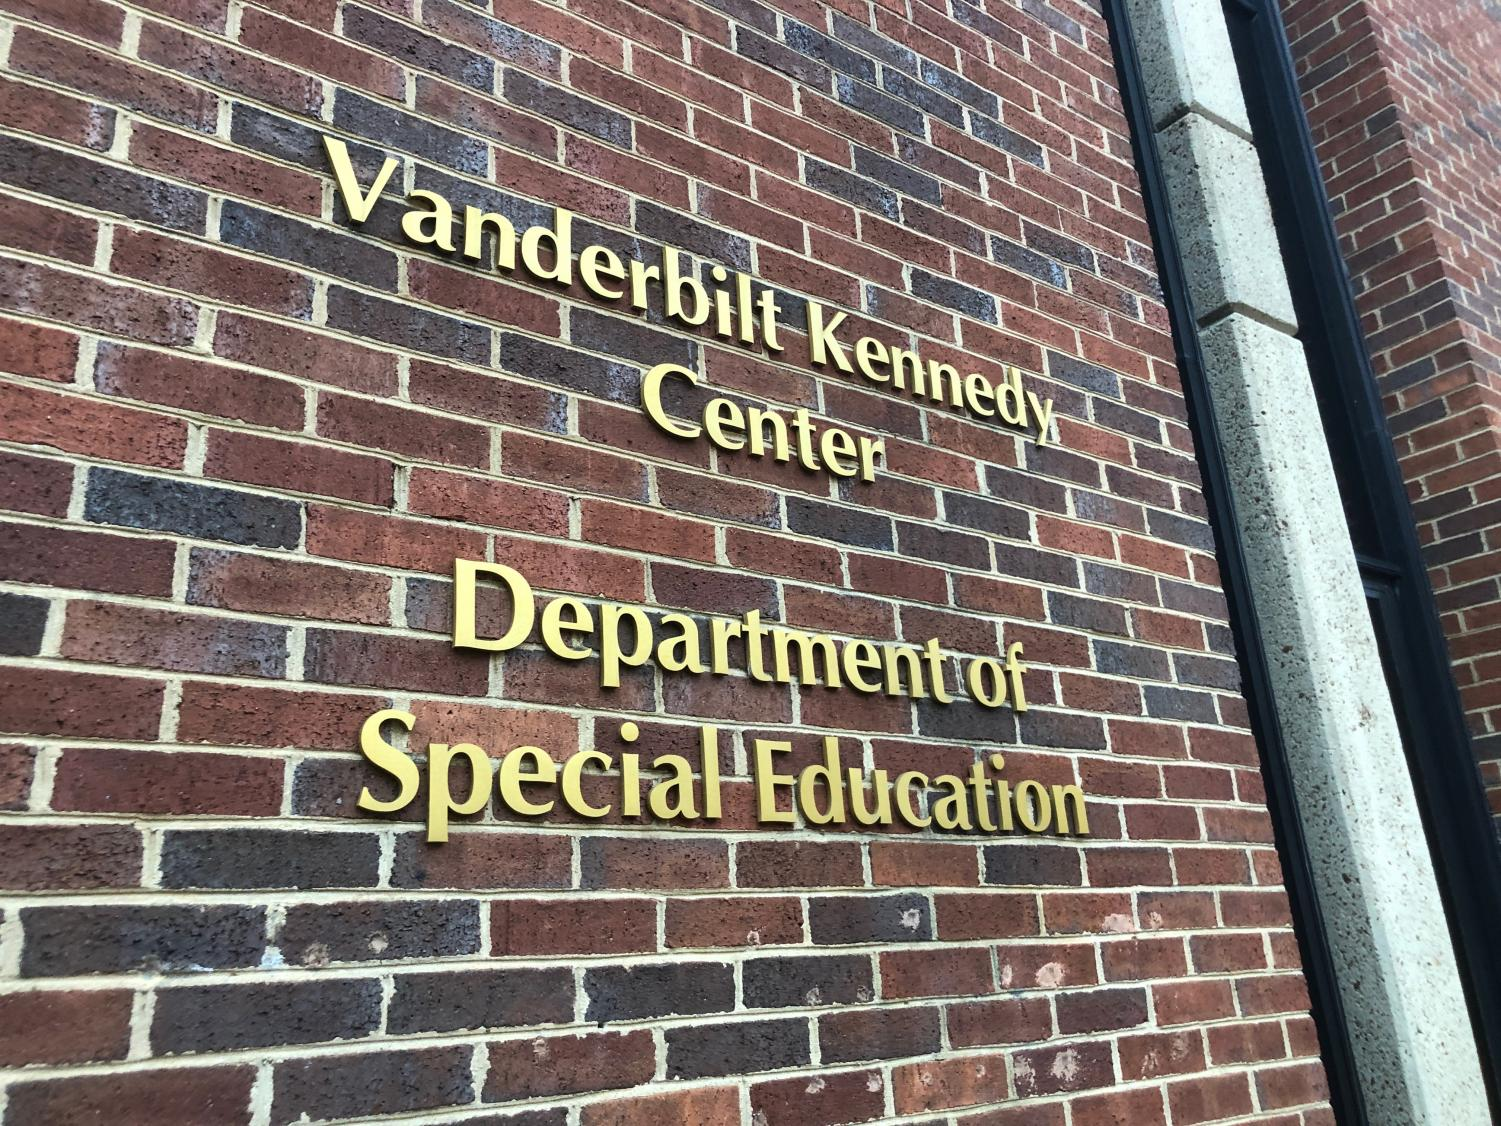 The Vanderbilt Kennedy Center Department of Special Education, which is near the pedestrian bridge between Commons and main campus along 21st Ave.